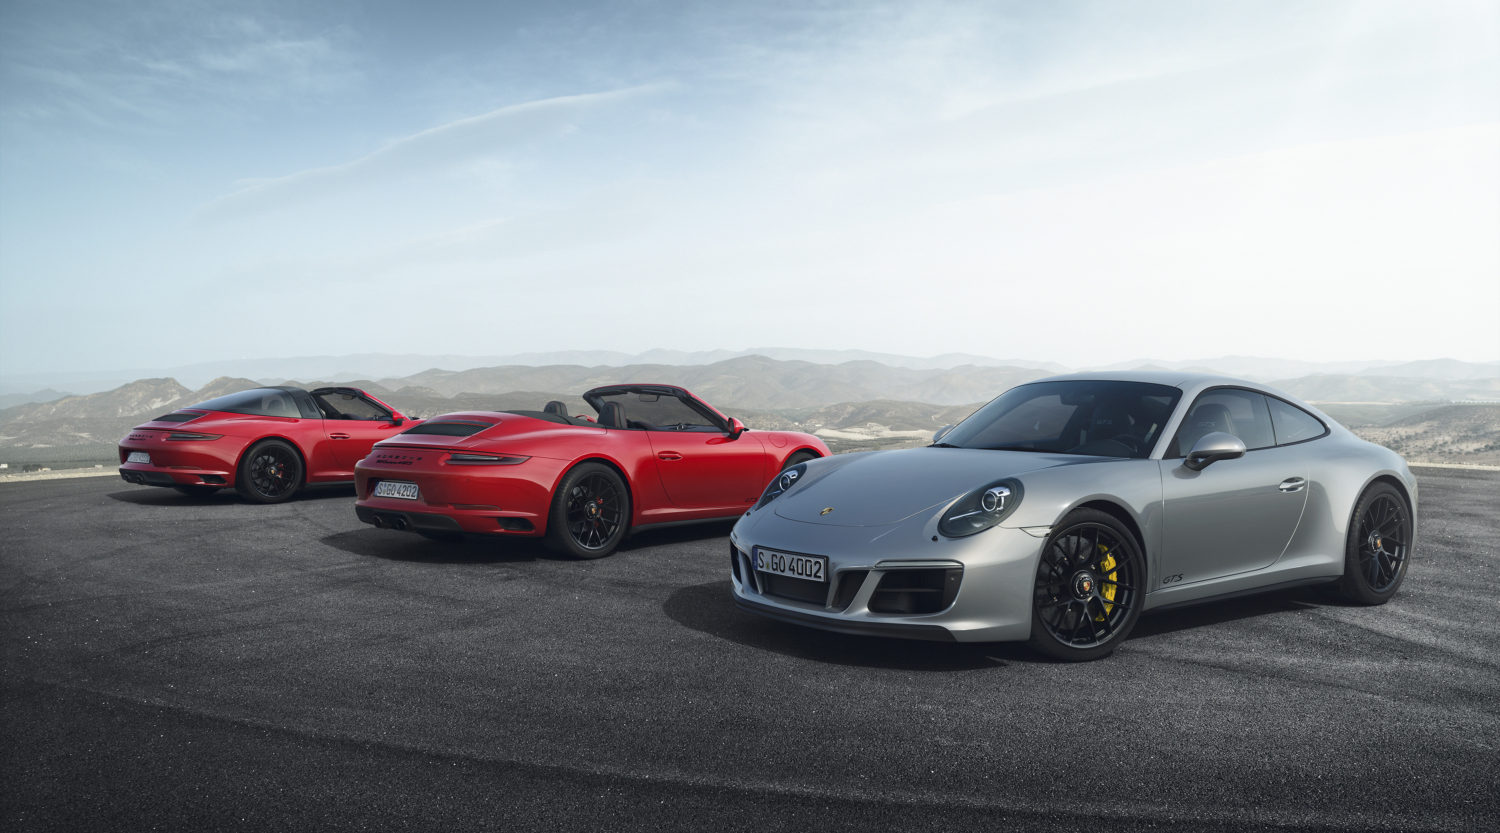 Porsche Is Expanding The 911 Model Line With Five New Gts Models Rear Wheel Drive Carrera All 4